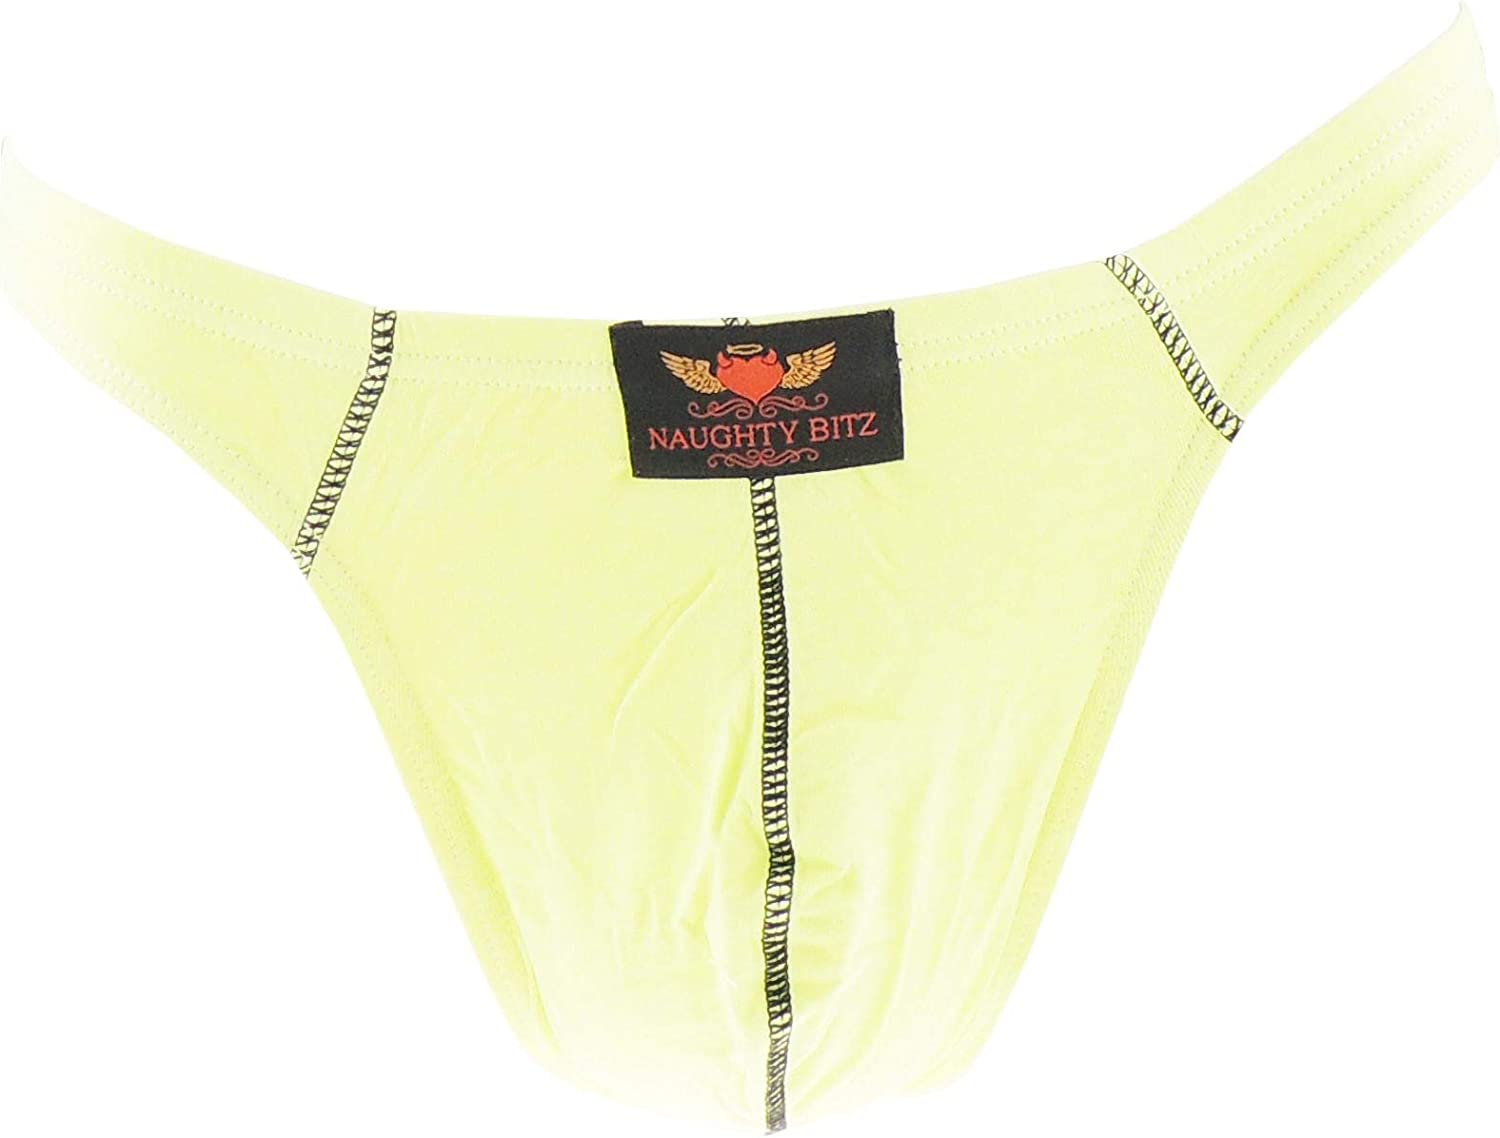 Naughty Bitz Bright Tight Cotton Underwear Mens Thong in 7 Colours